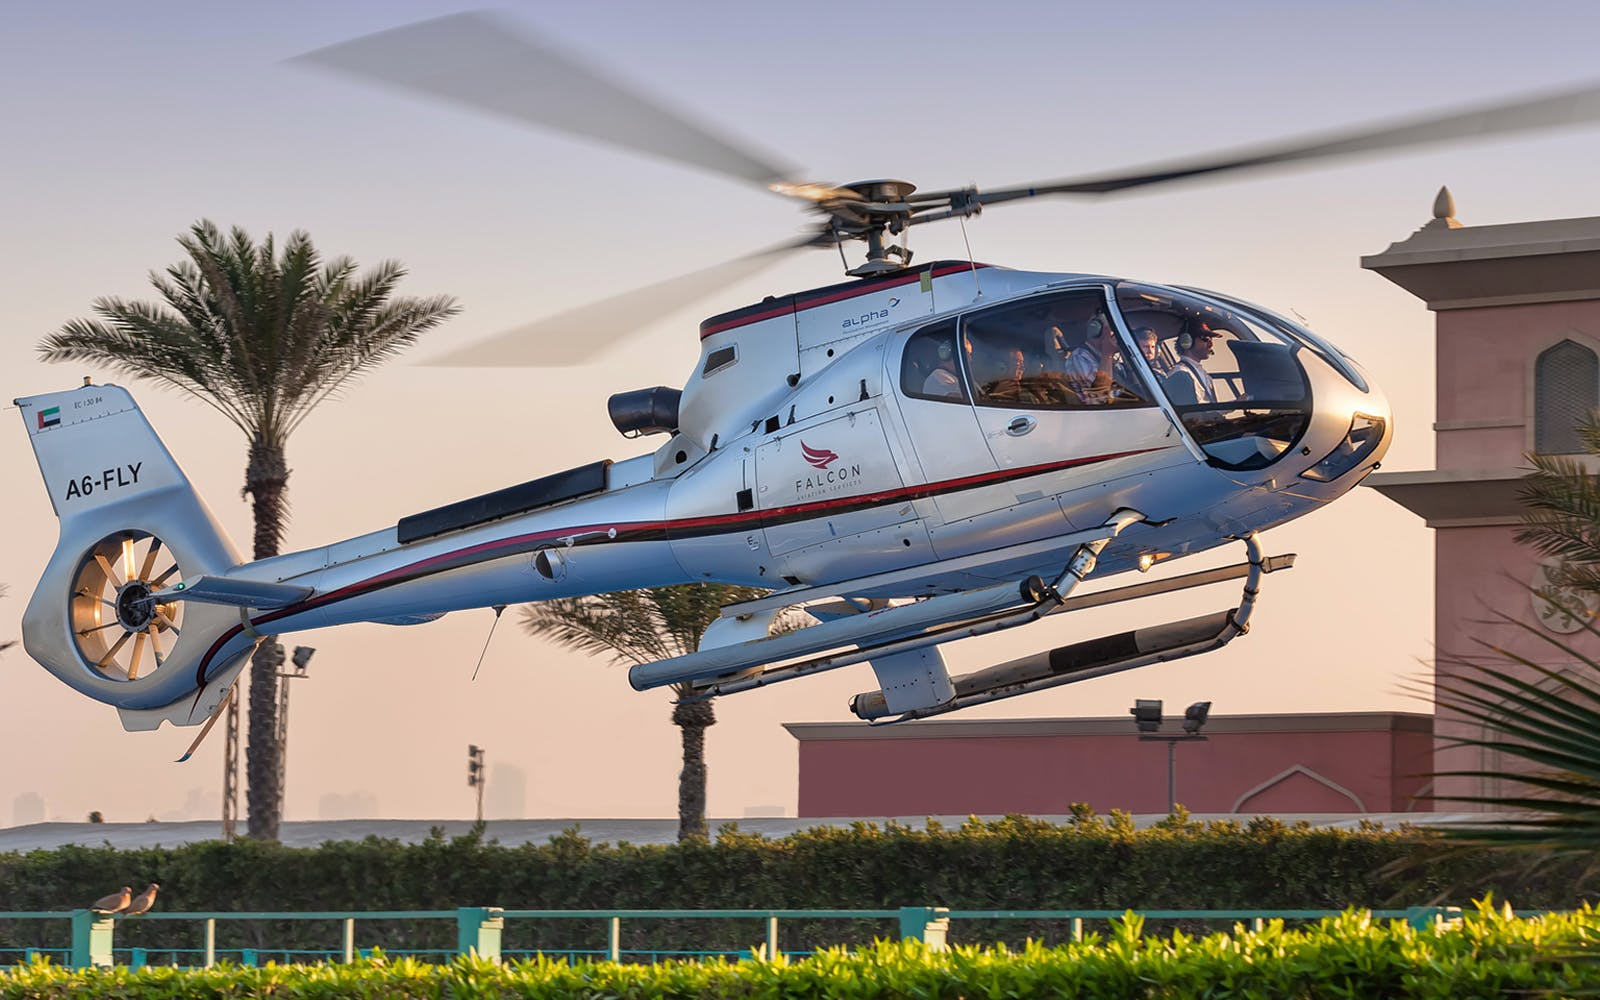 Luxury Helicopter Tour - 15 Minutes